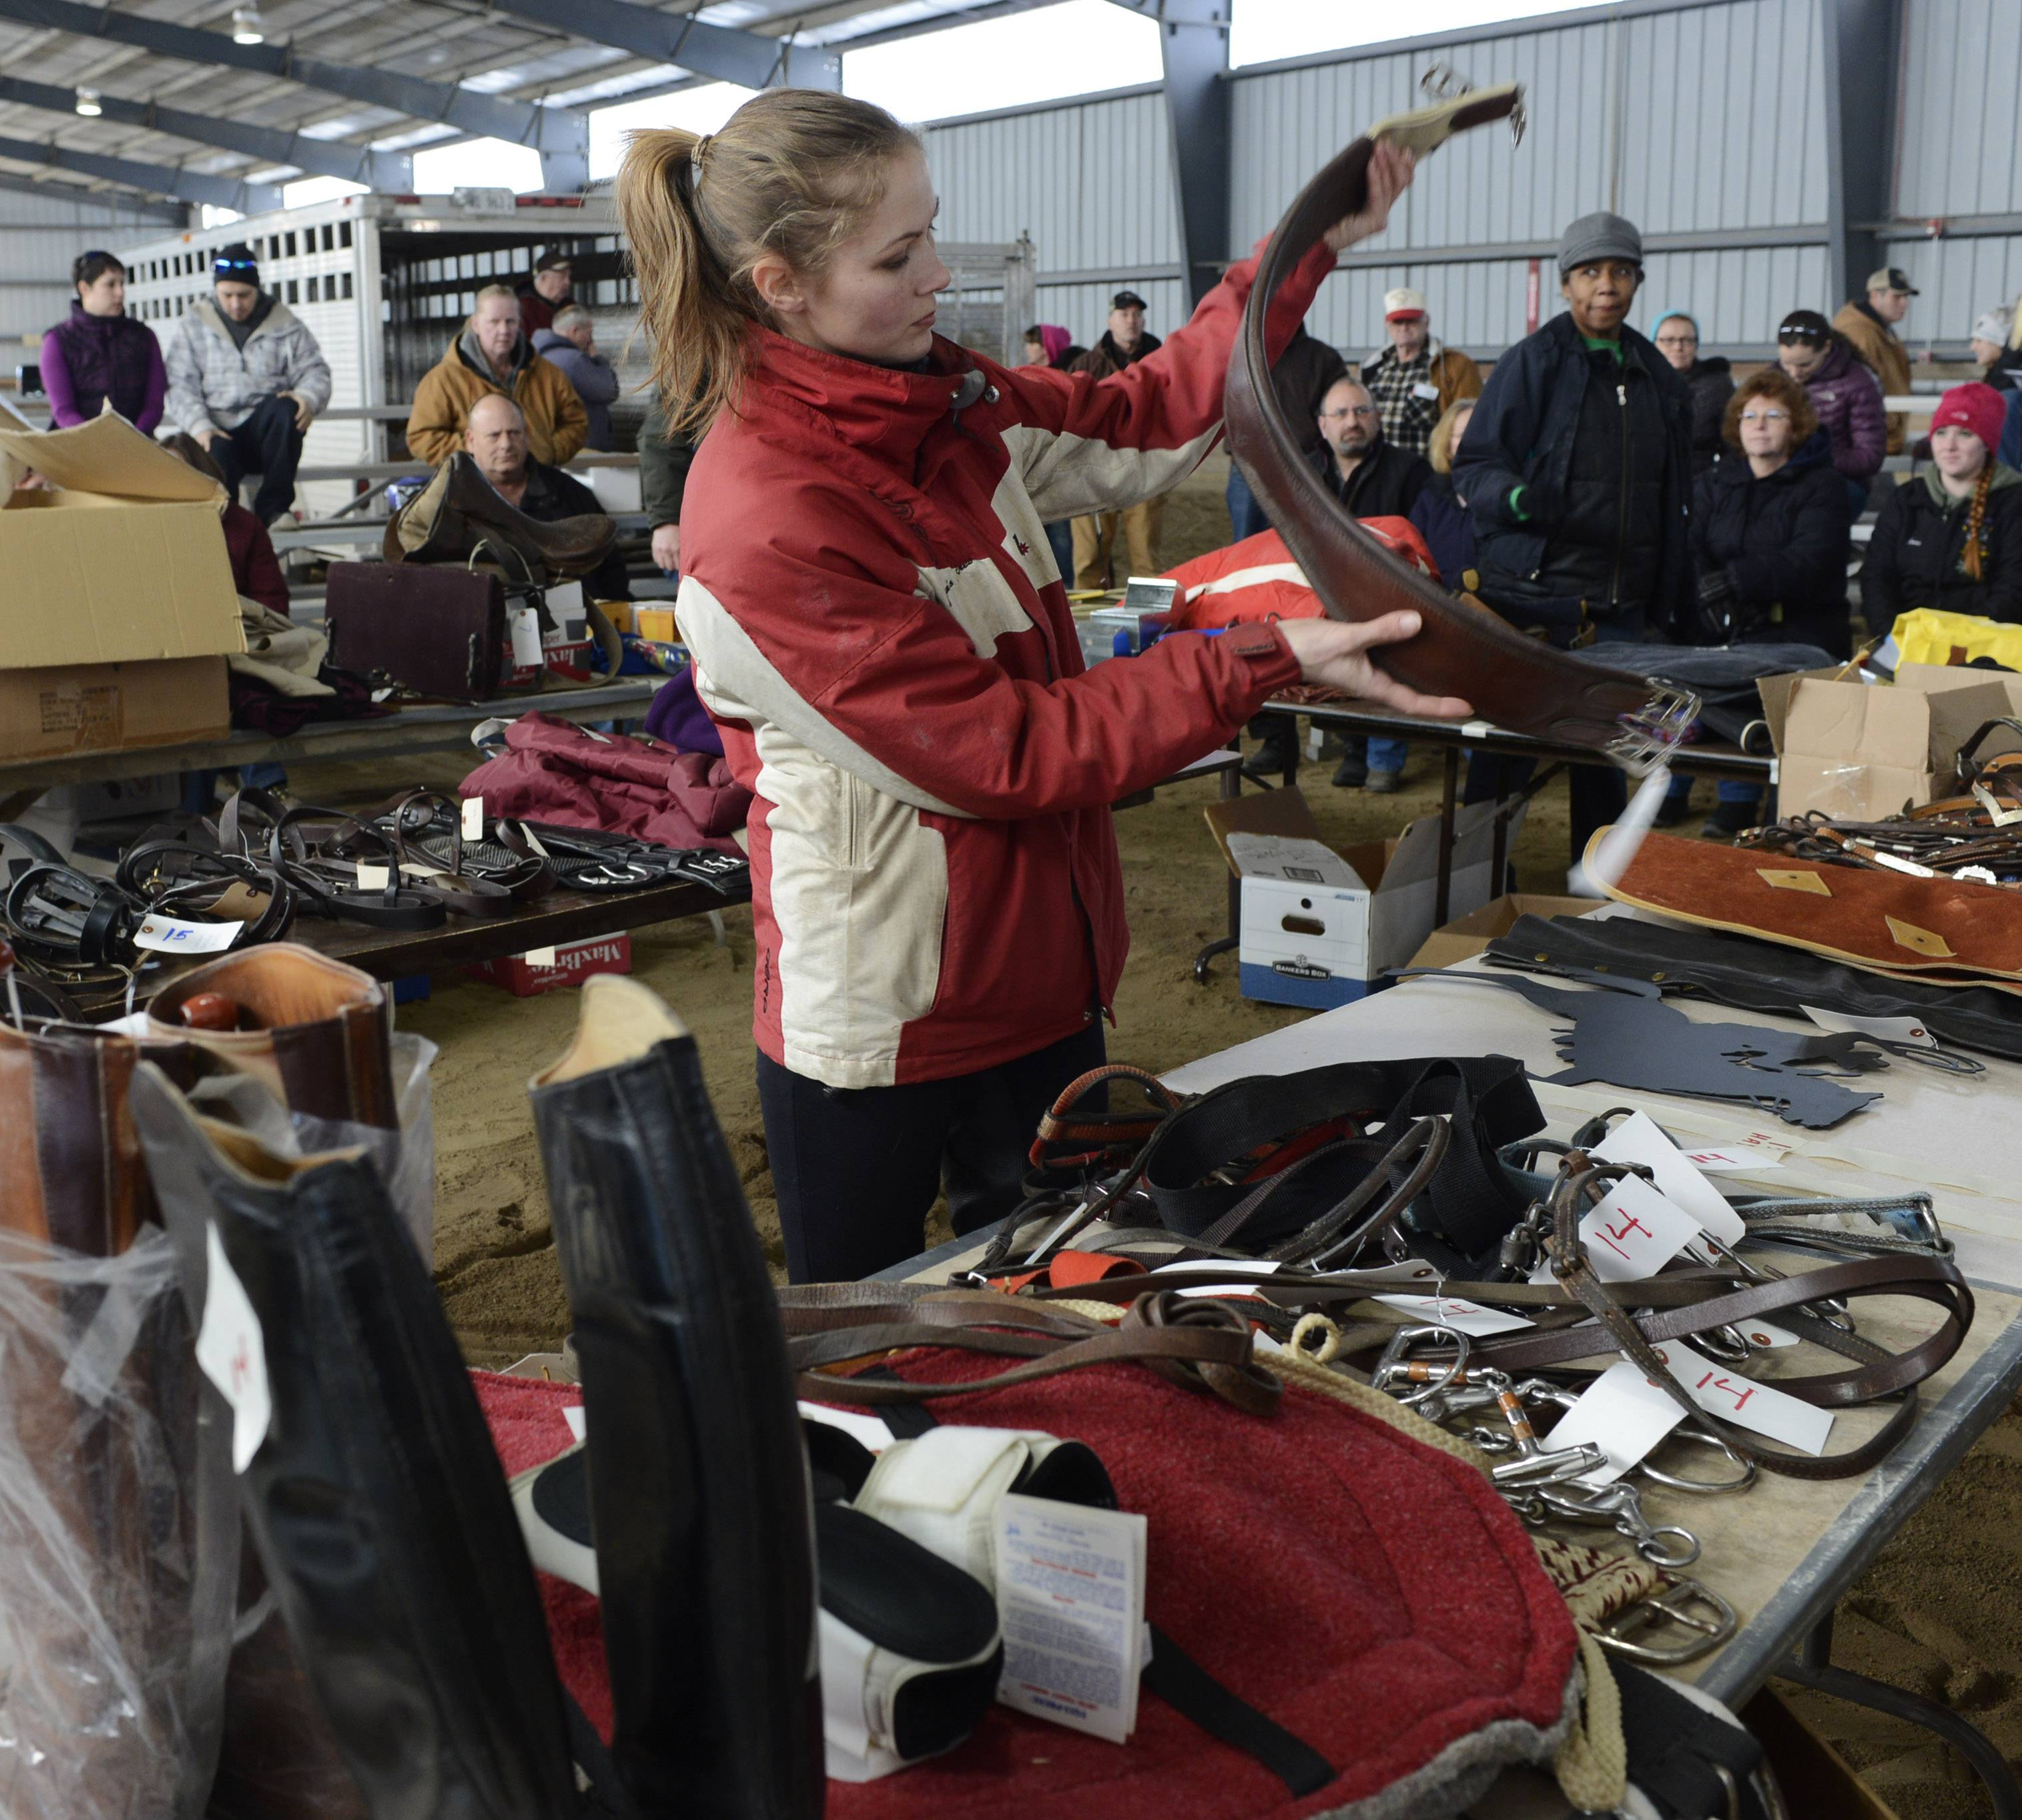 Jessica Janis, of Warrenville, views items prior to the Fox Valley Saddle Association consignment auction in Hampshire Sunday.